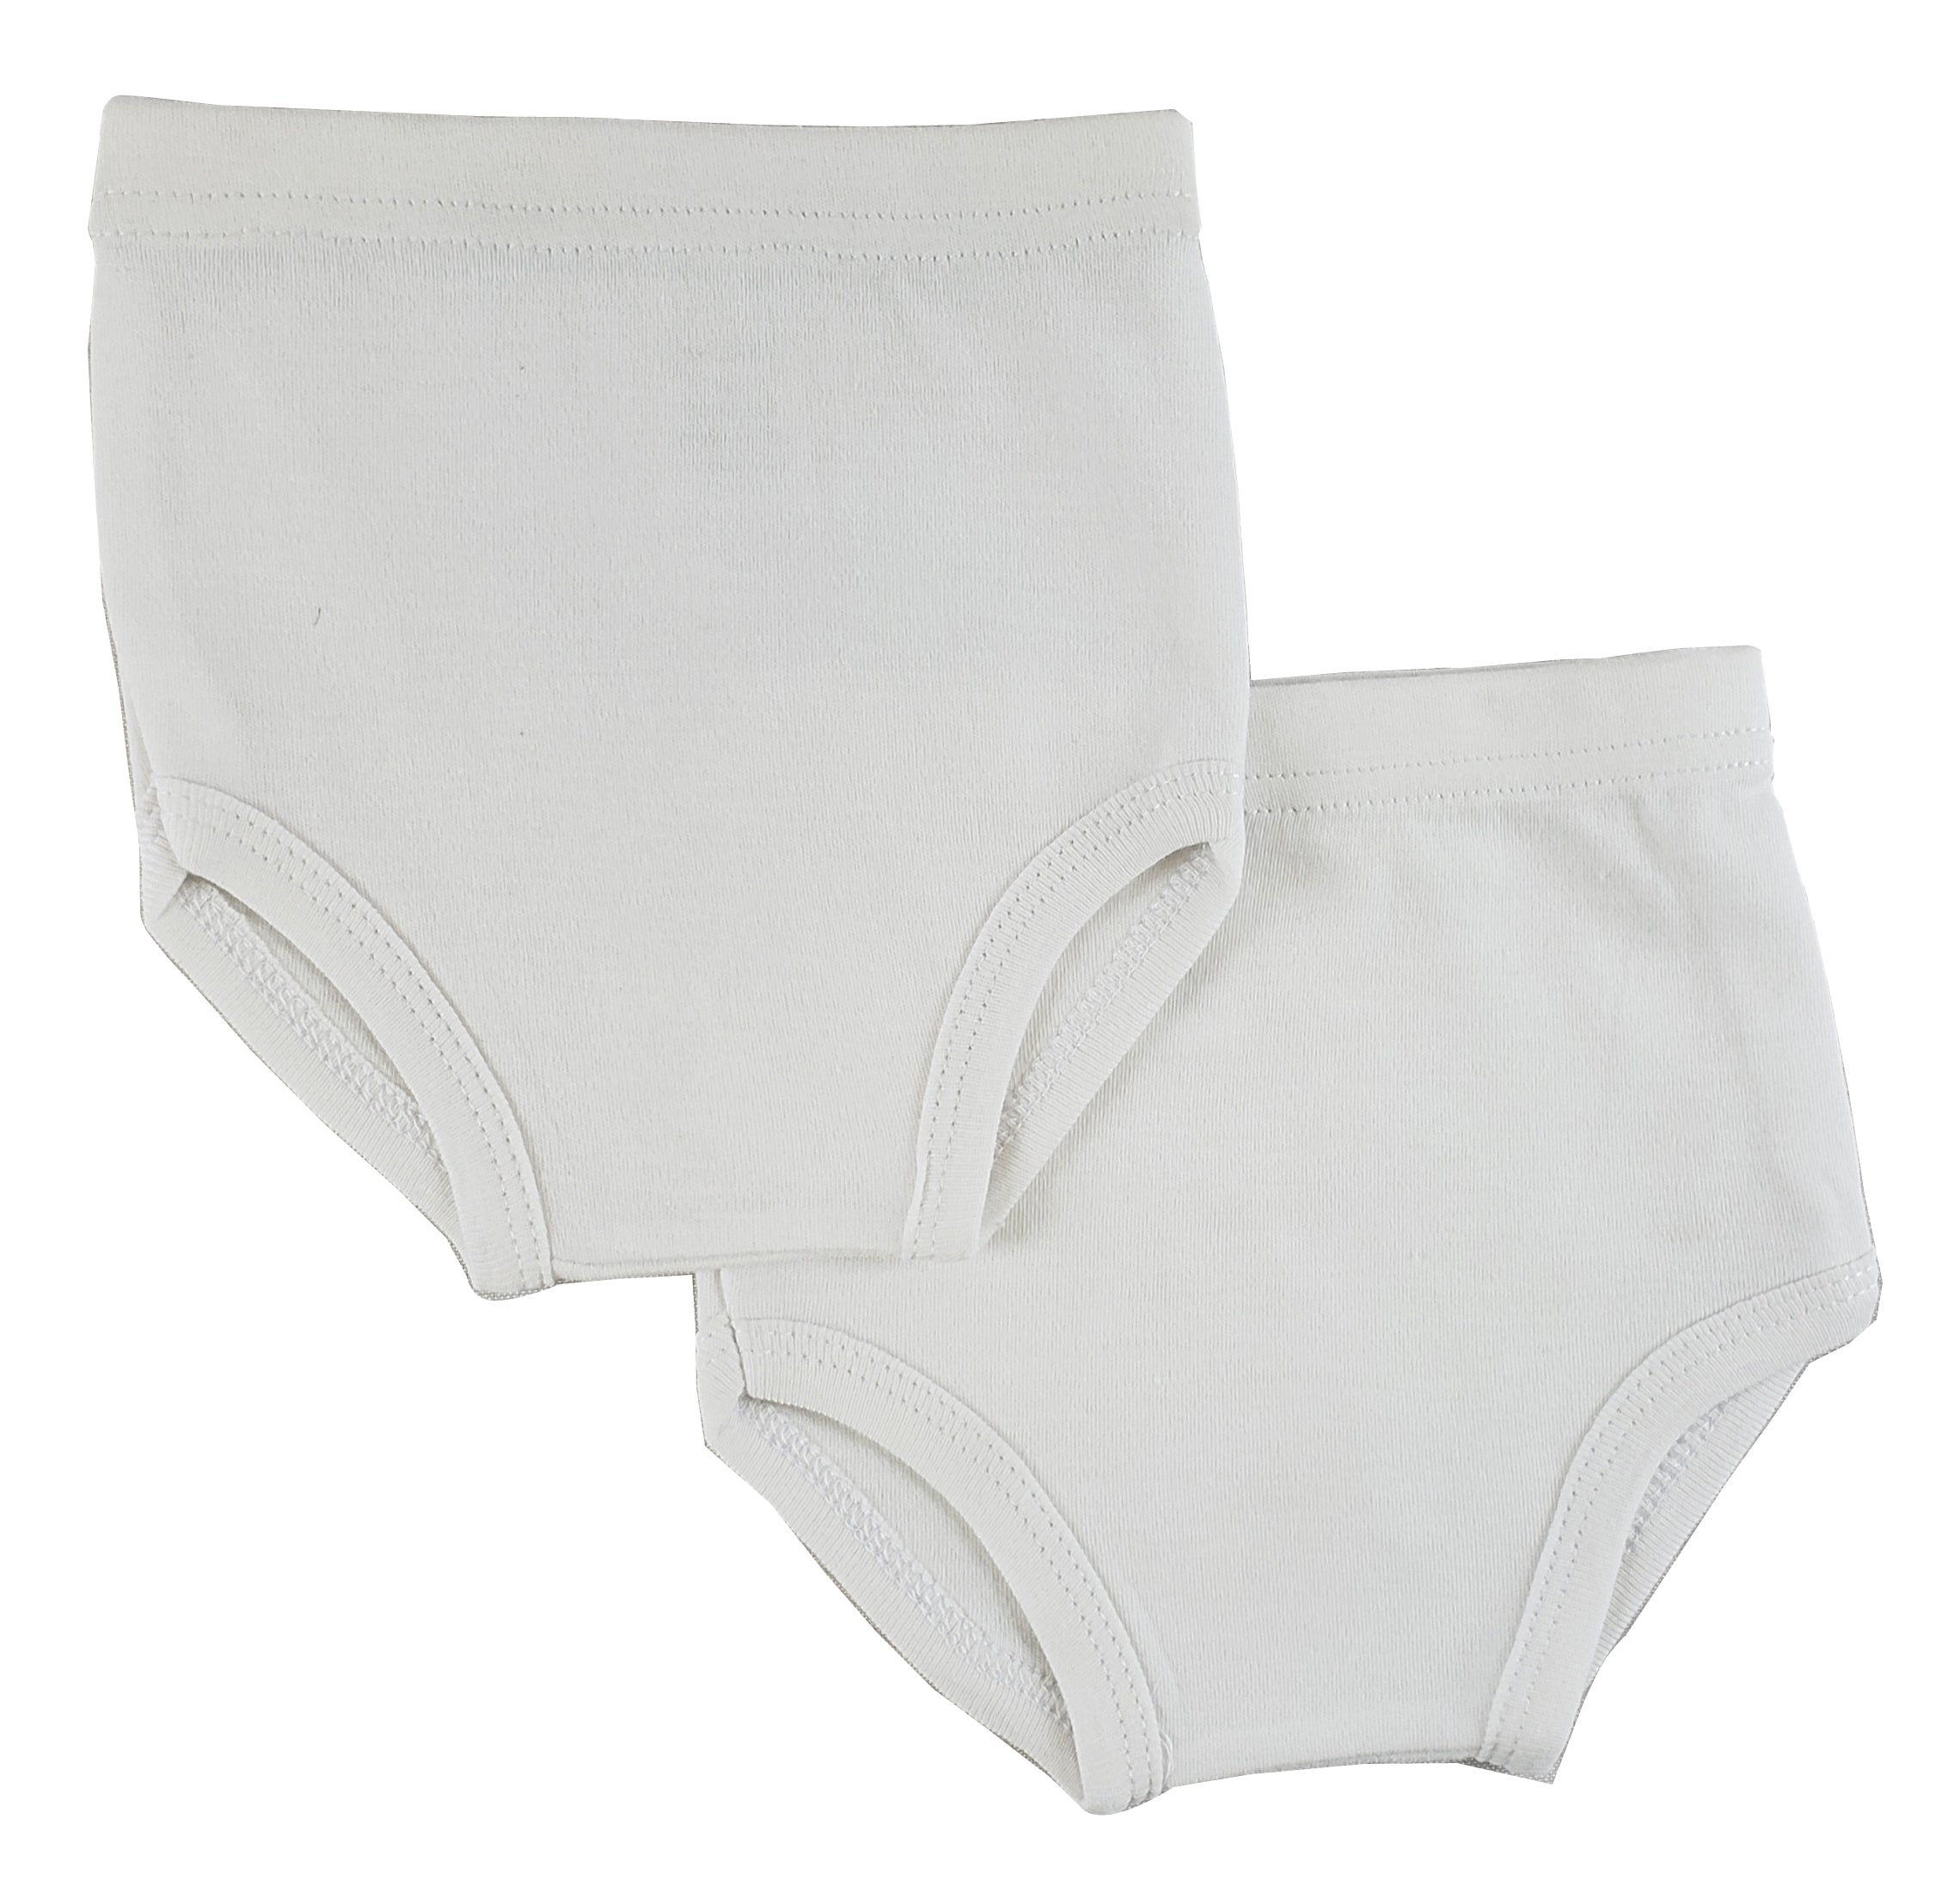 Training Pants - 2 Pack